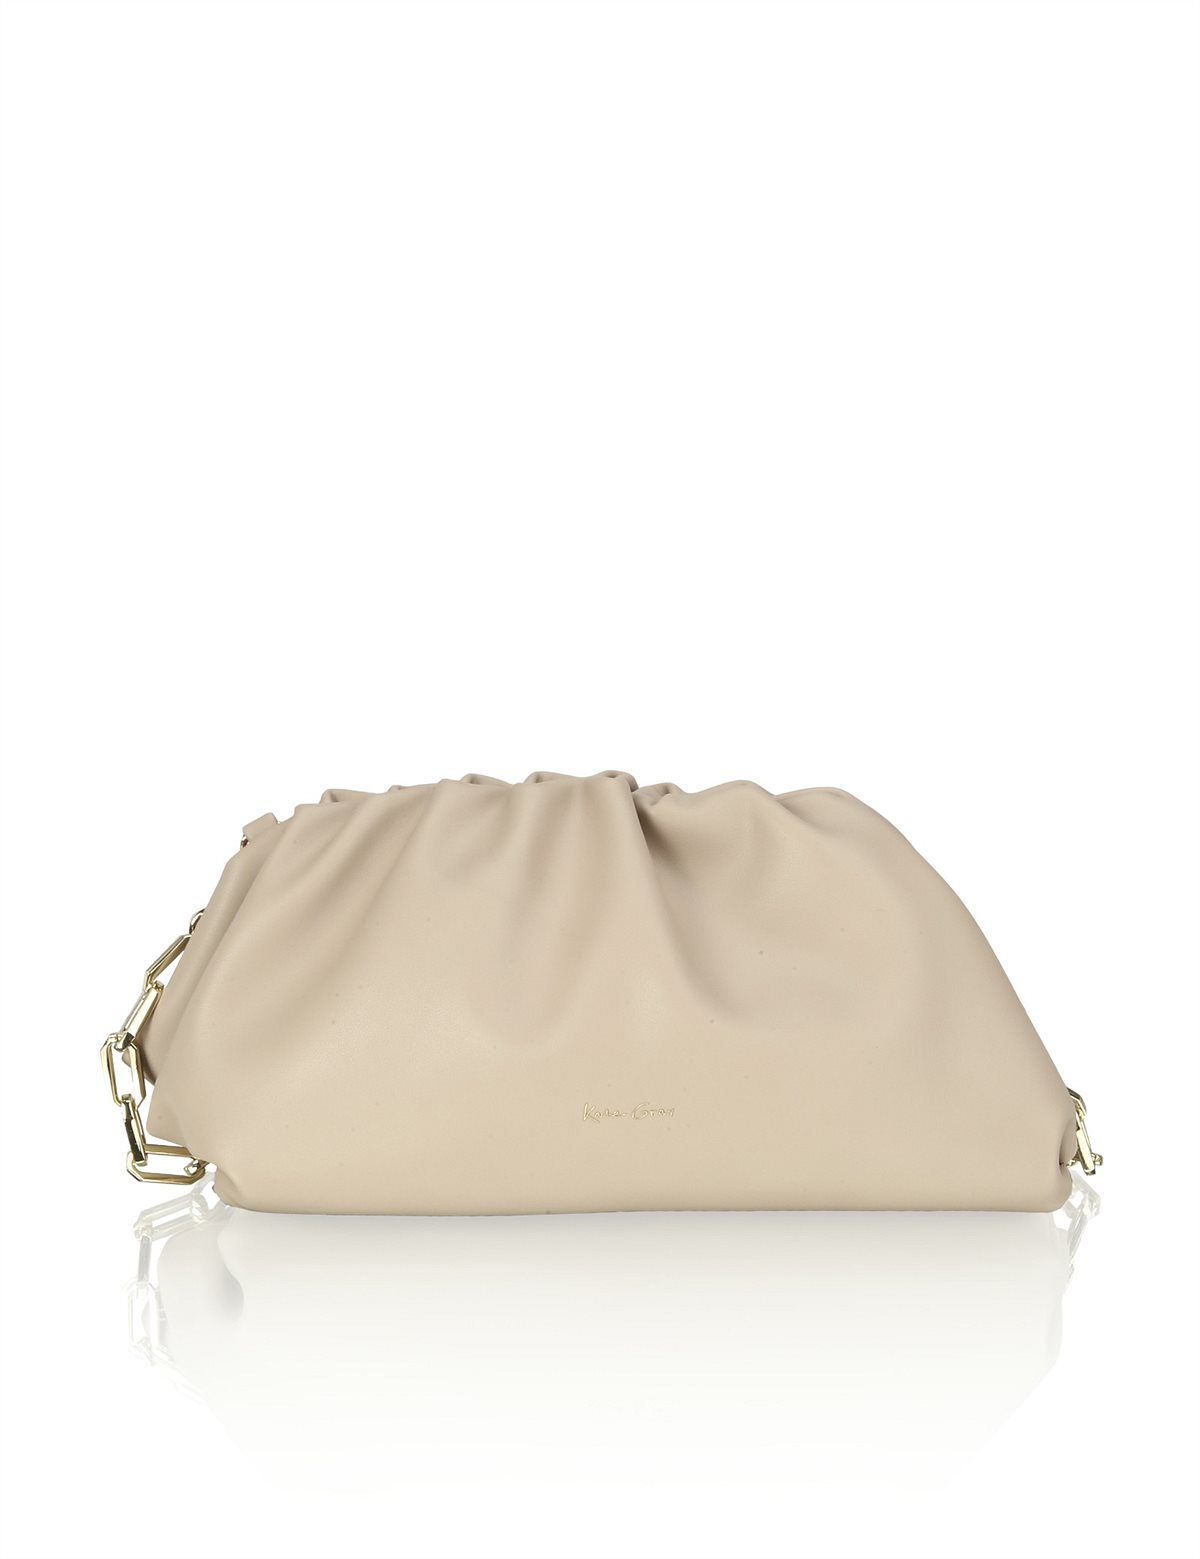 HUMANIC 04 Kate Gray Soft Shoulder Bag EUR 49,95 ab Mitte August 6131002436